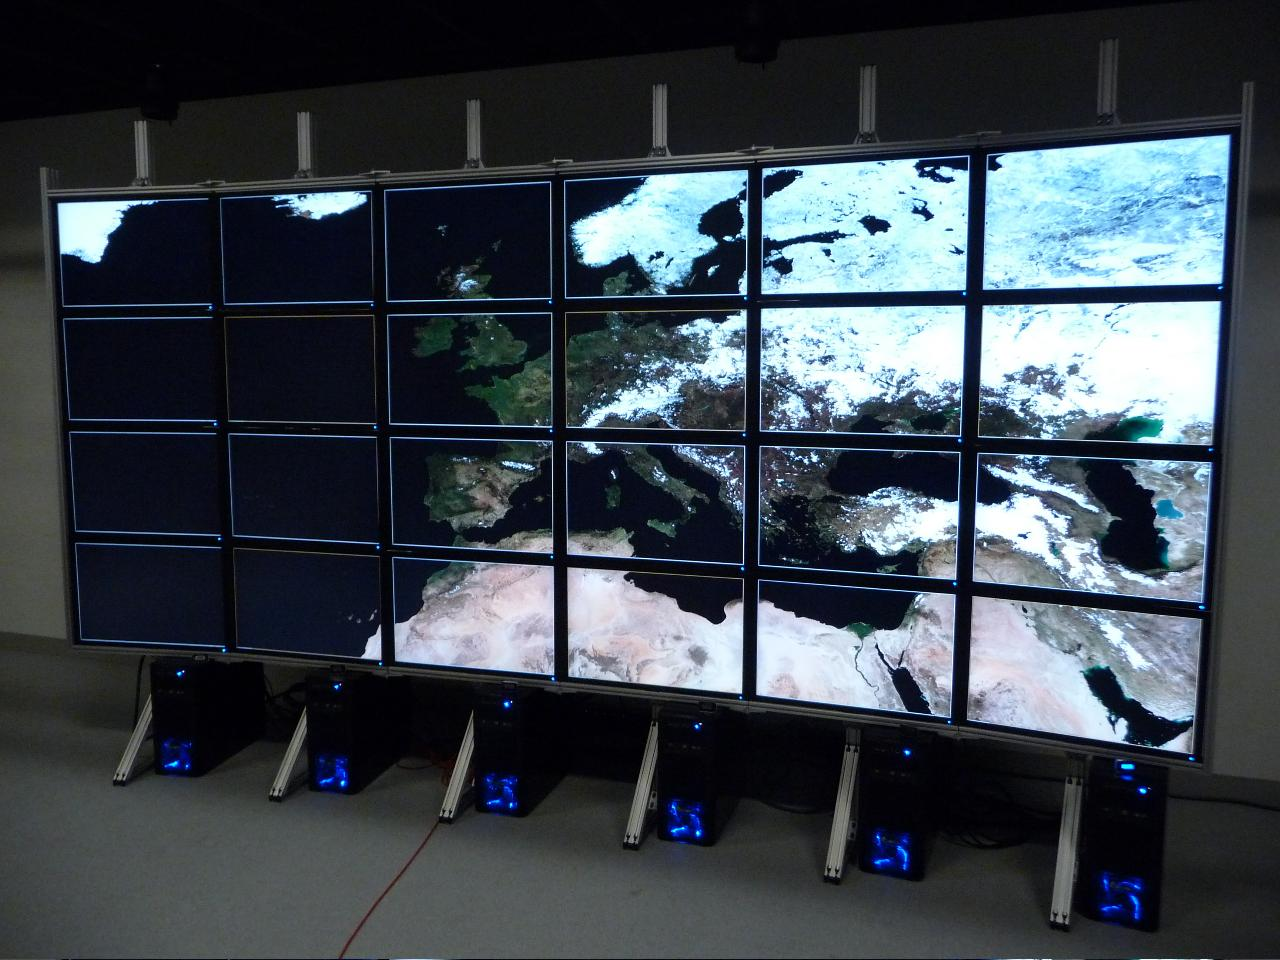 Gigapixel preview of a satellite image displayed across multiple monitors